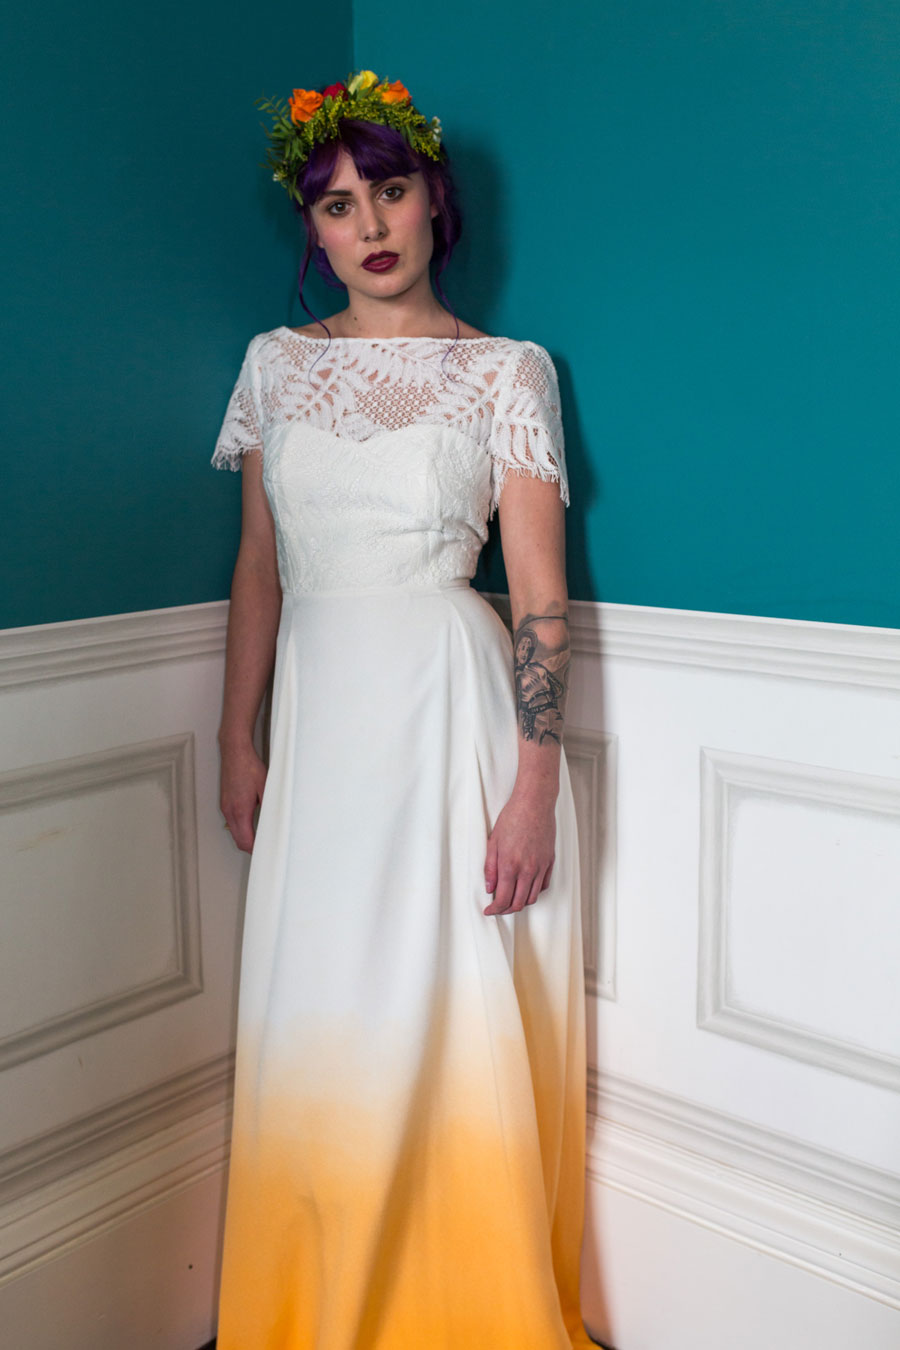 Non Traditional Wedding Dress Lace : Colourful quirky wedding dresses for non traditional